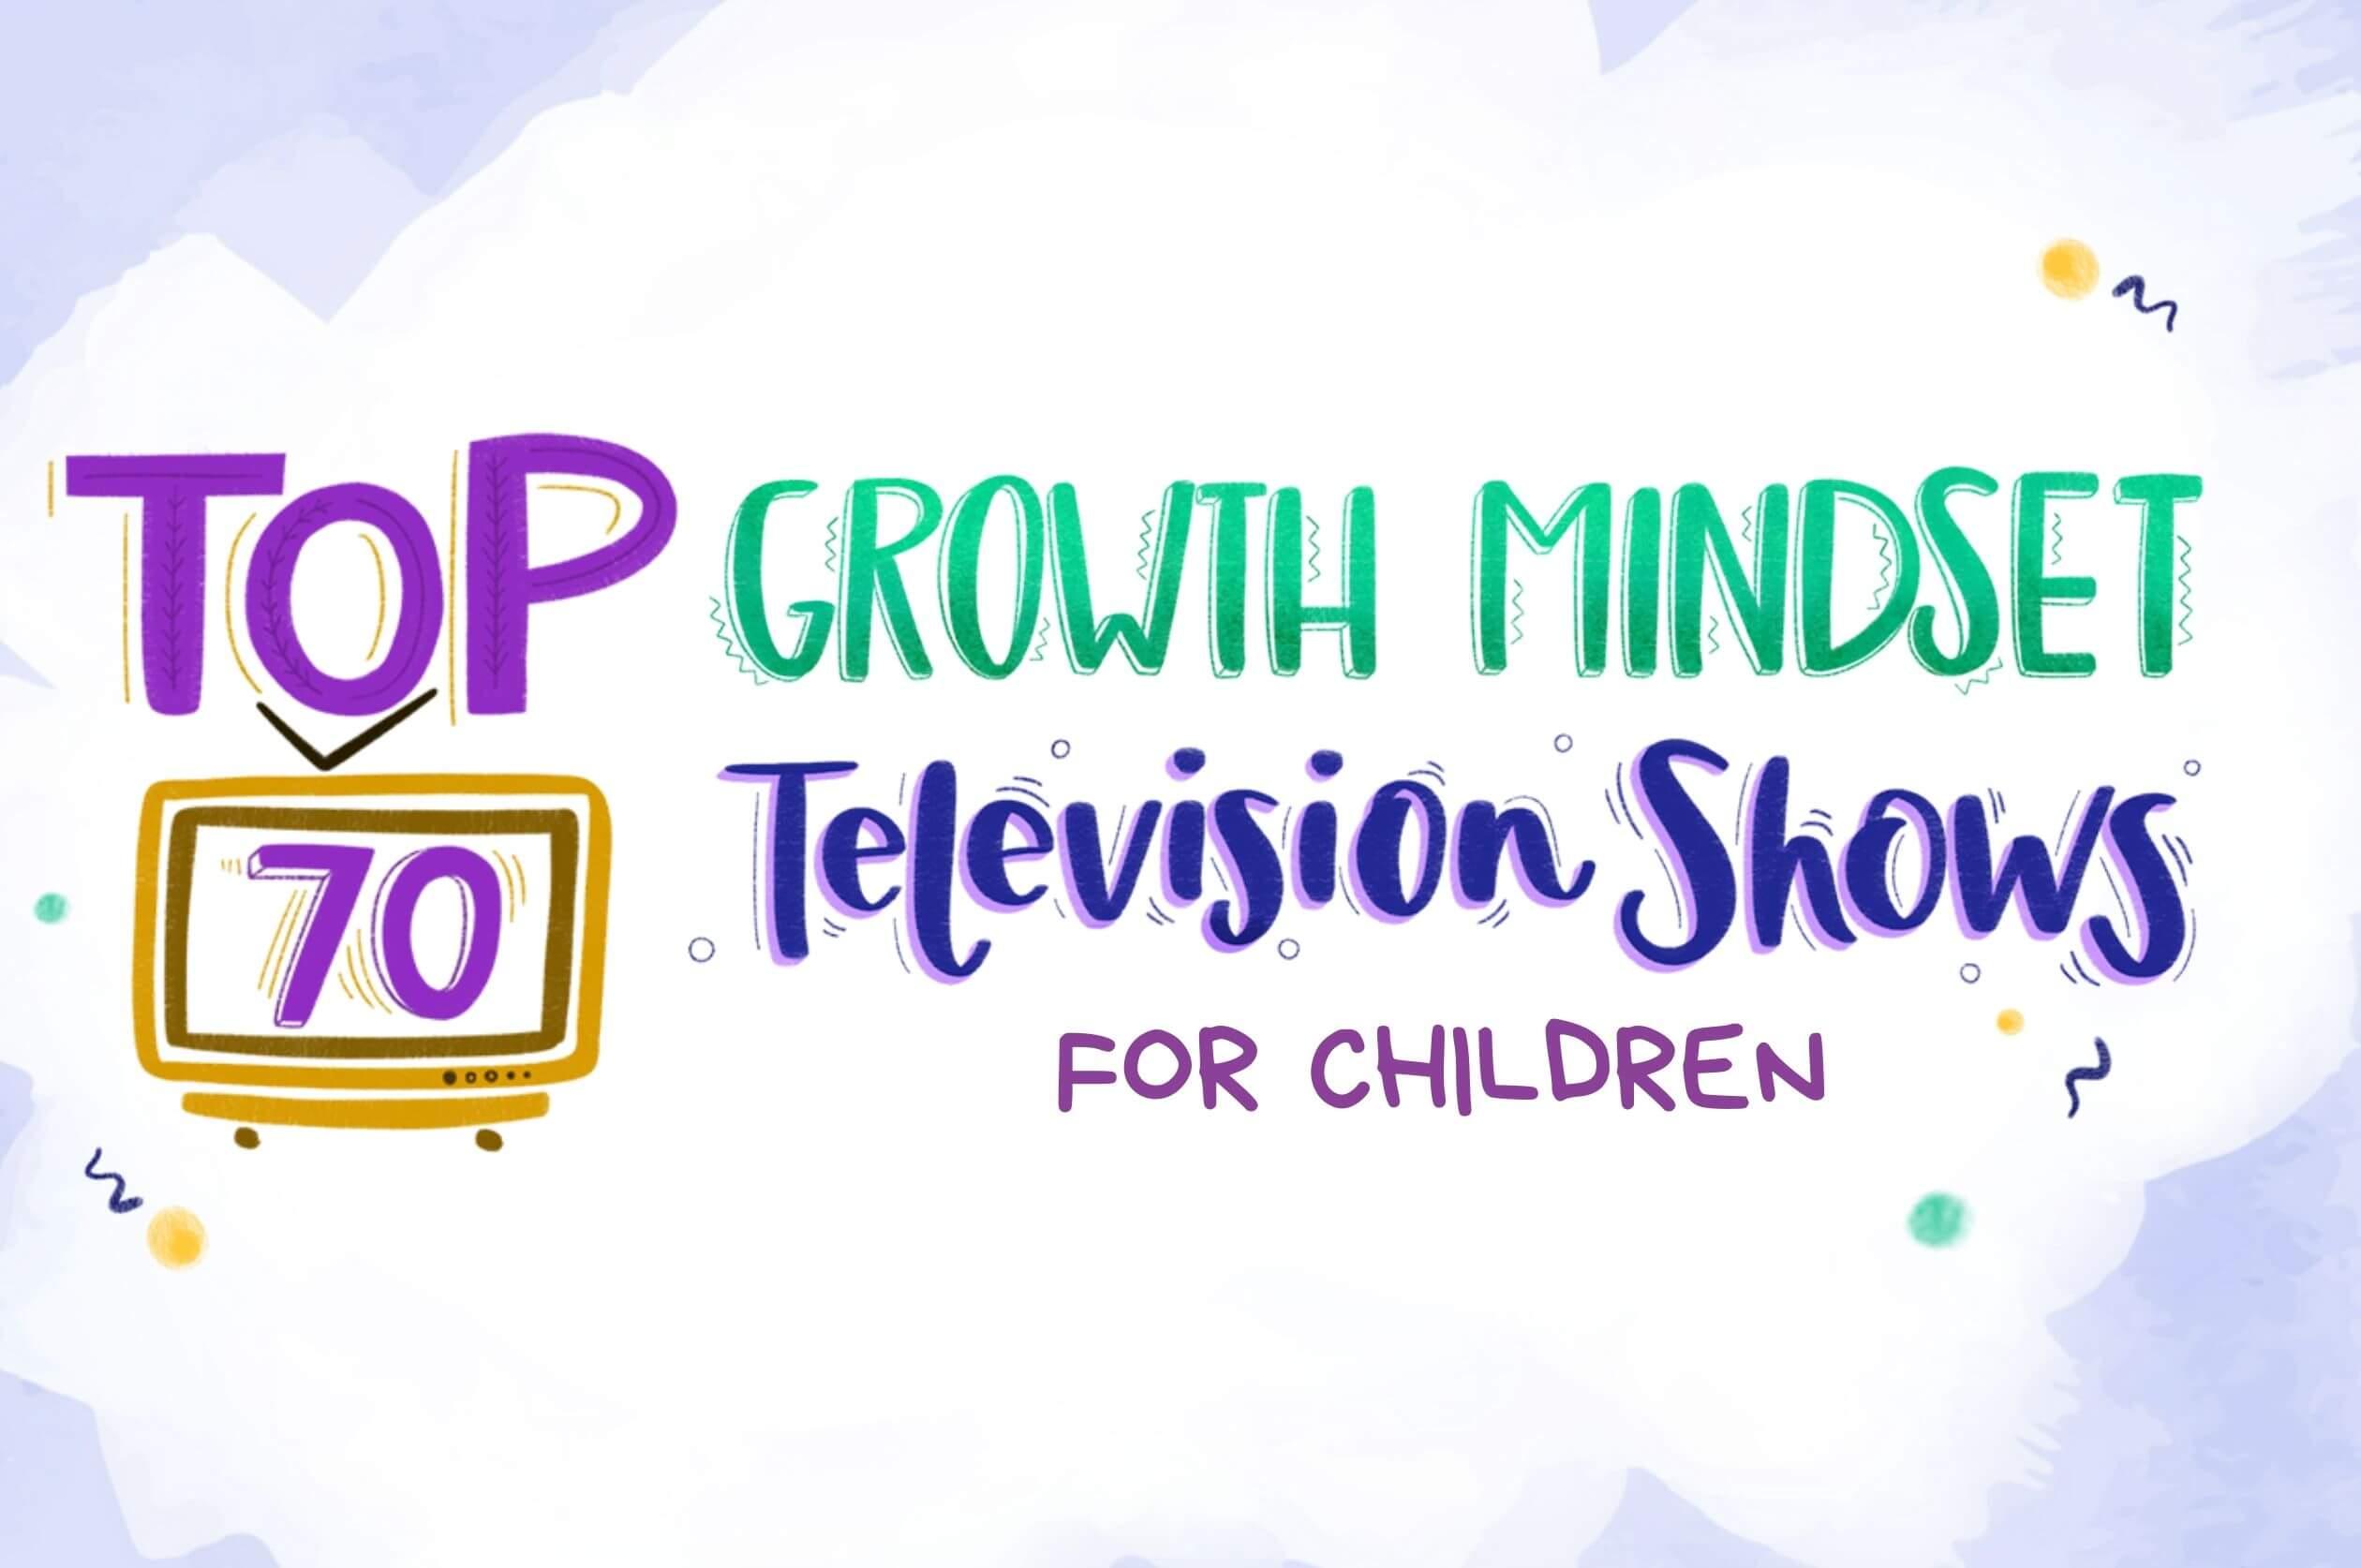 Top 70 Growth Mindset Television Shows